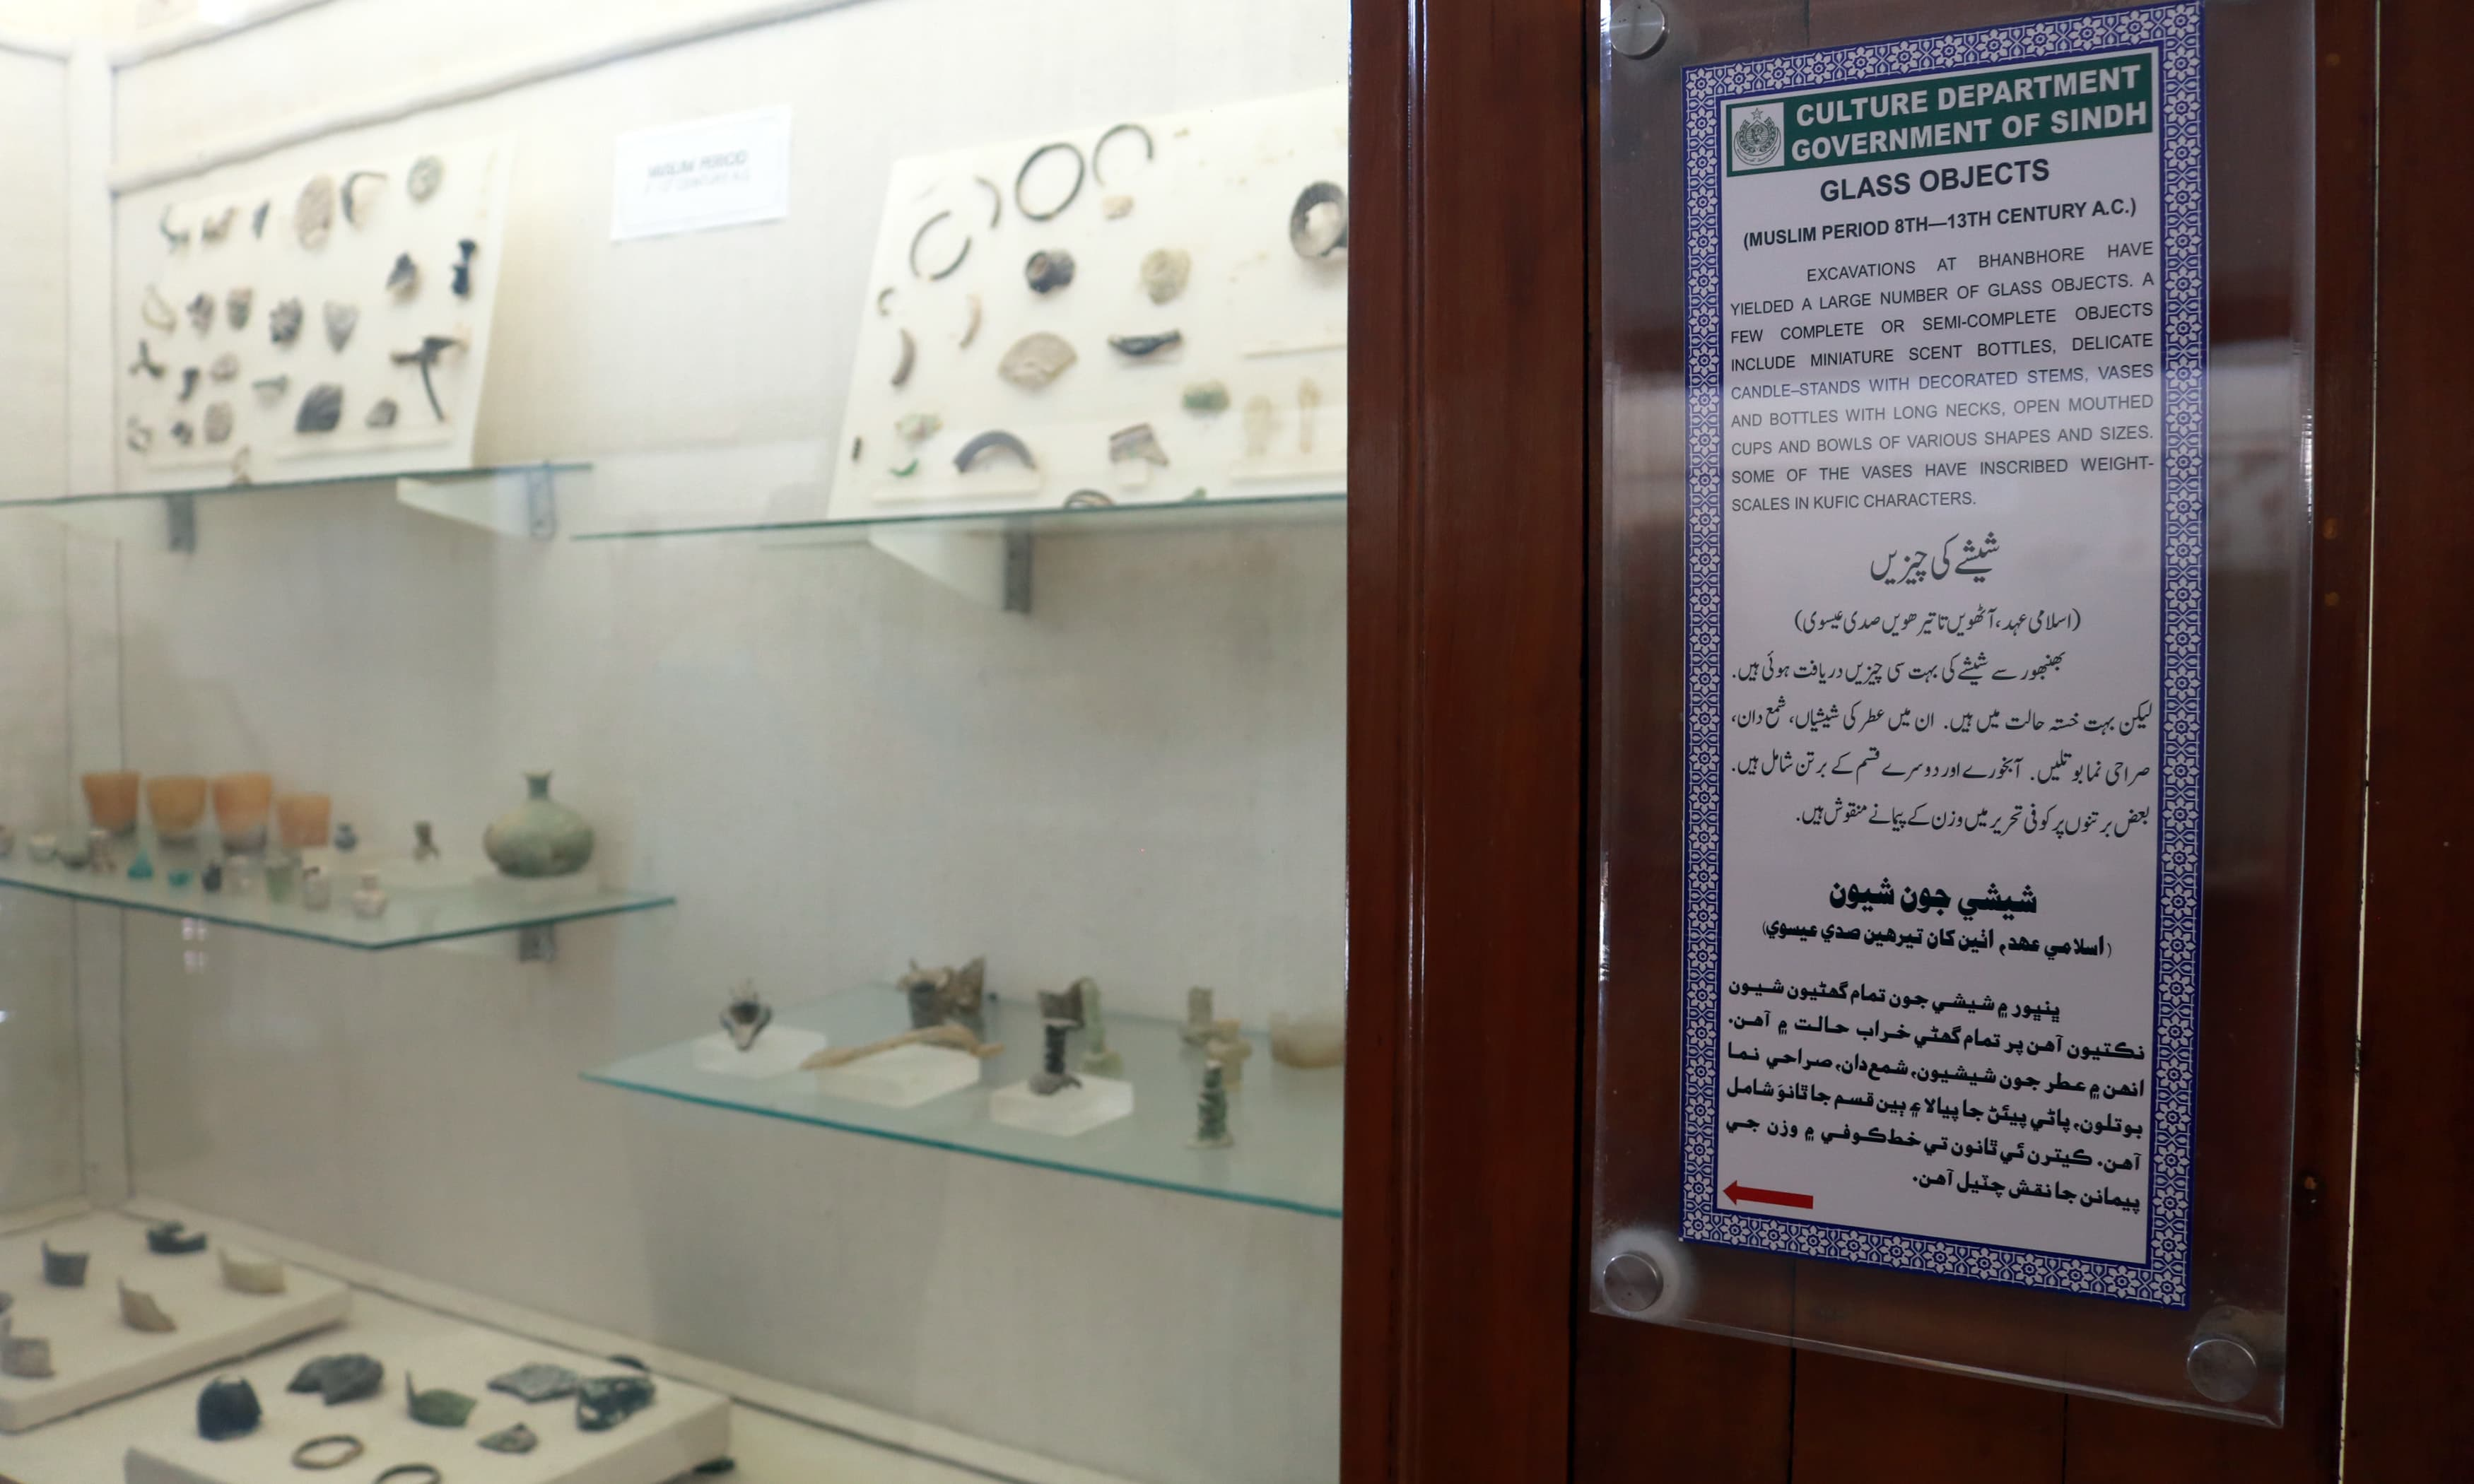 Relics on display at Bhanbhore Museum. —Ema Anis